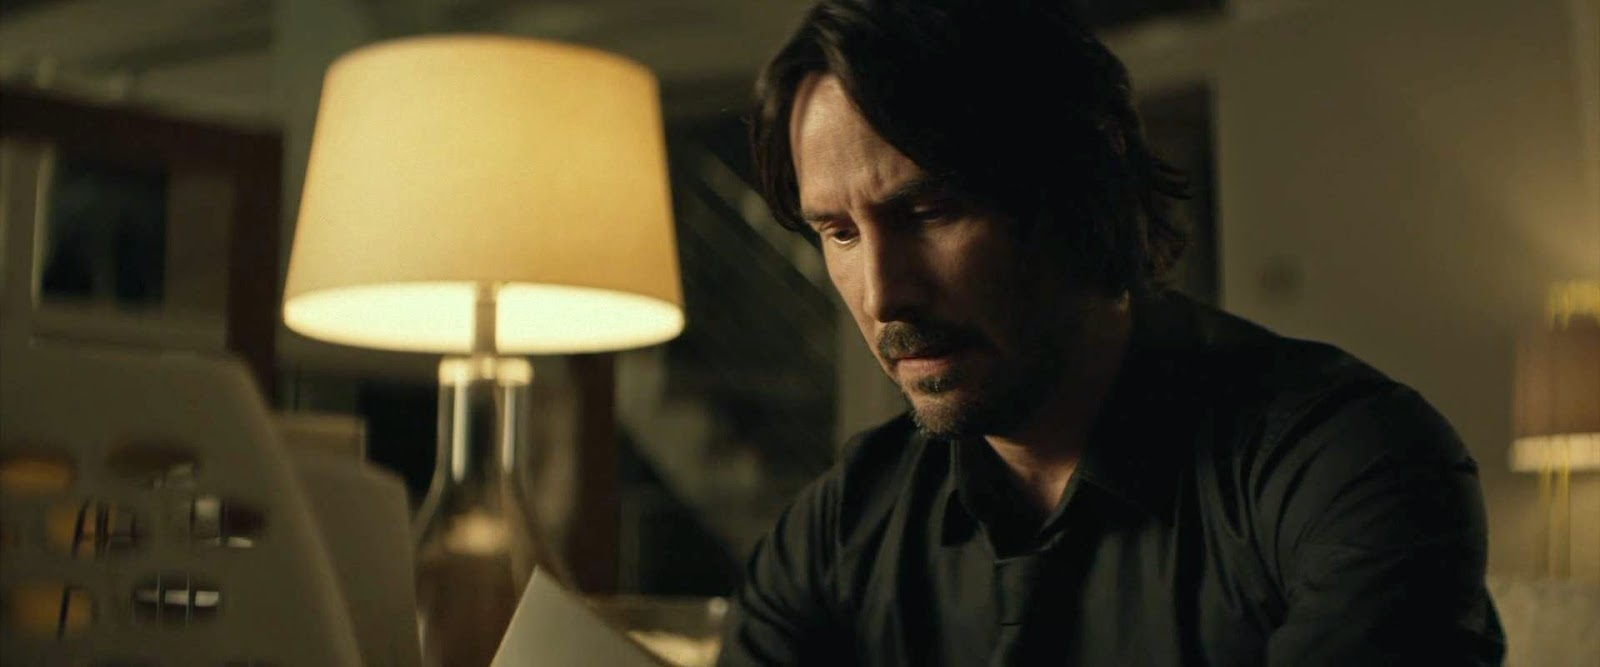 John Wick 2014 1080p Bluray 6ch English Movie Free